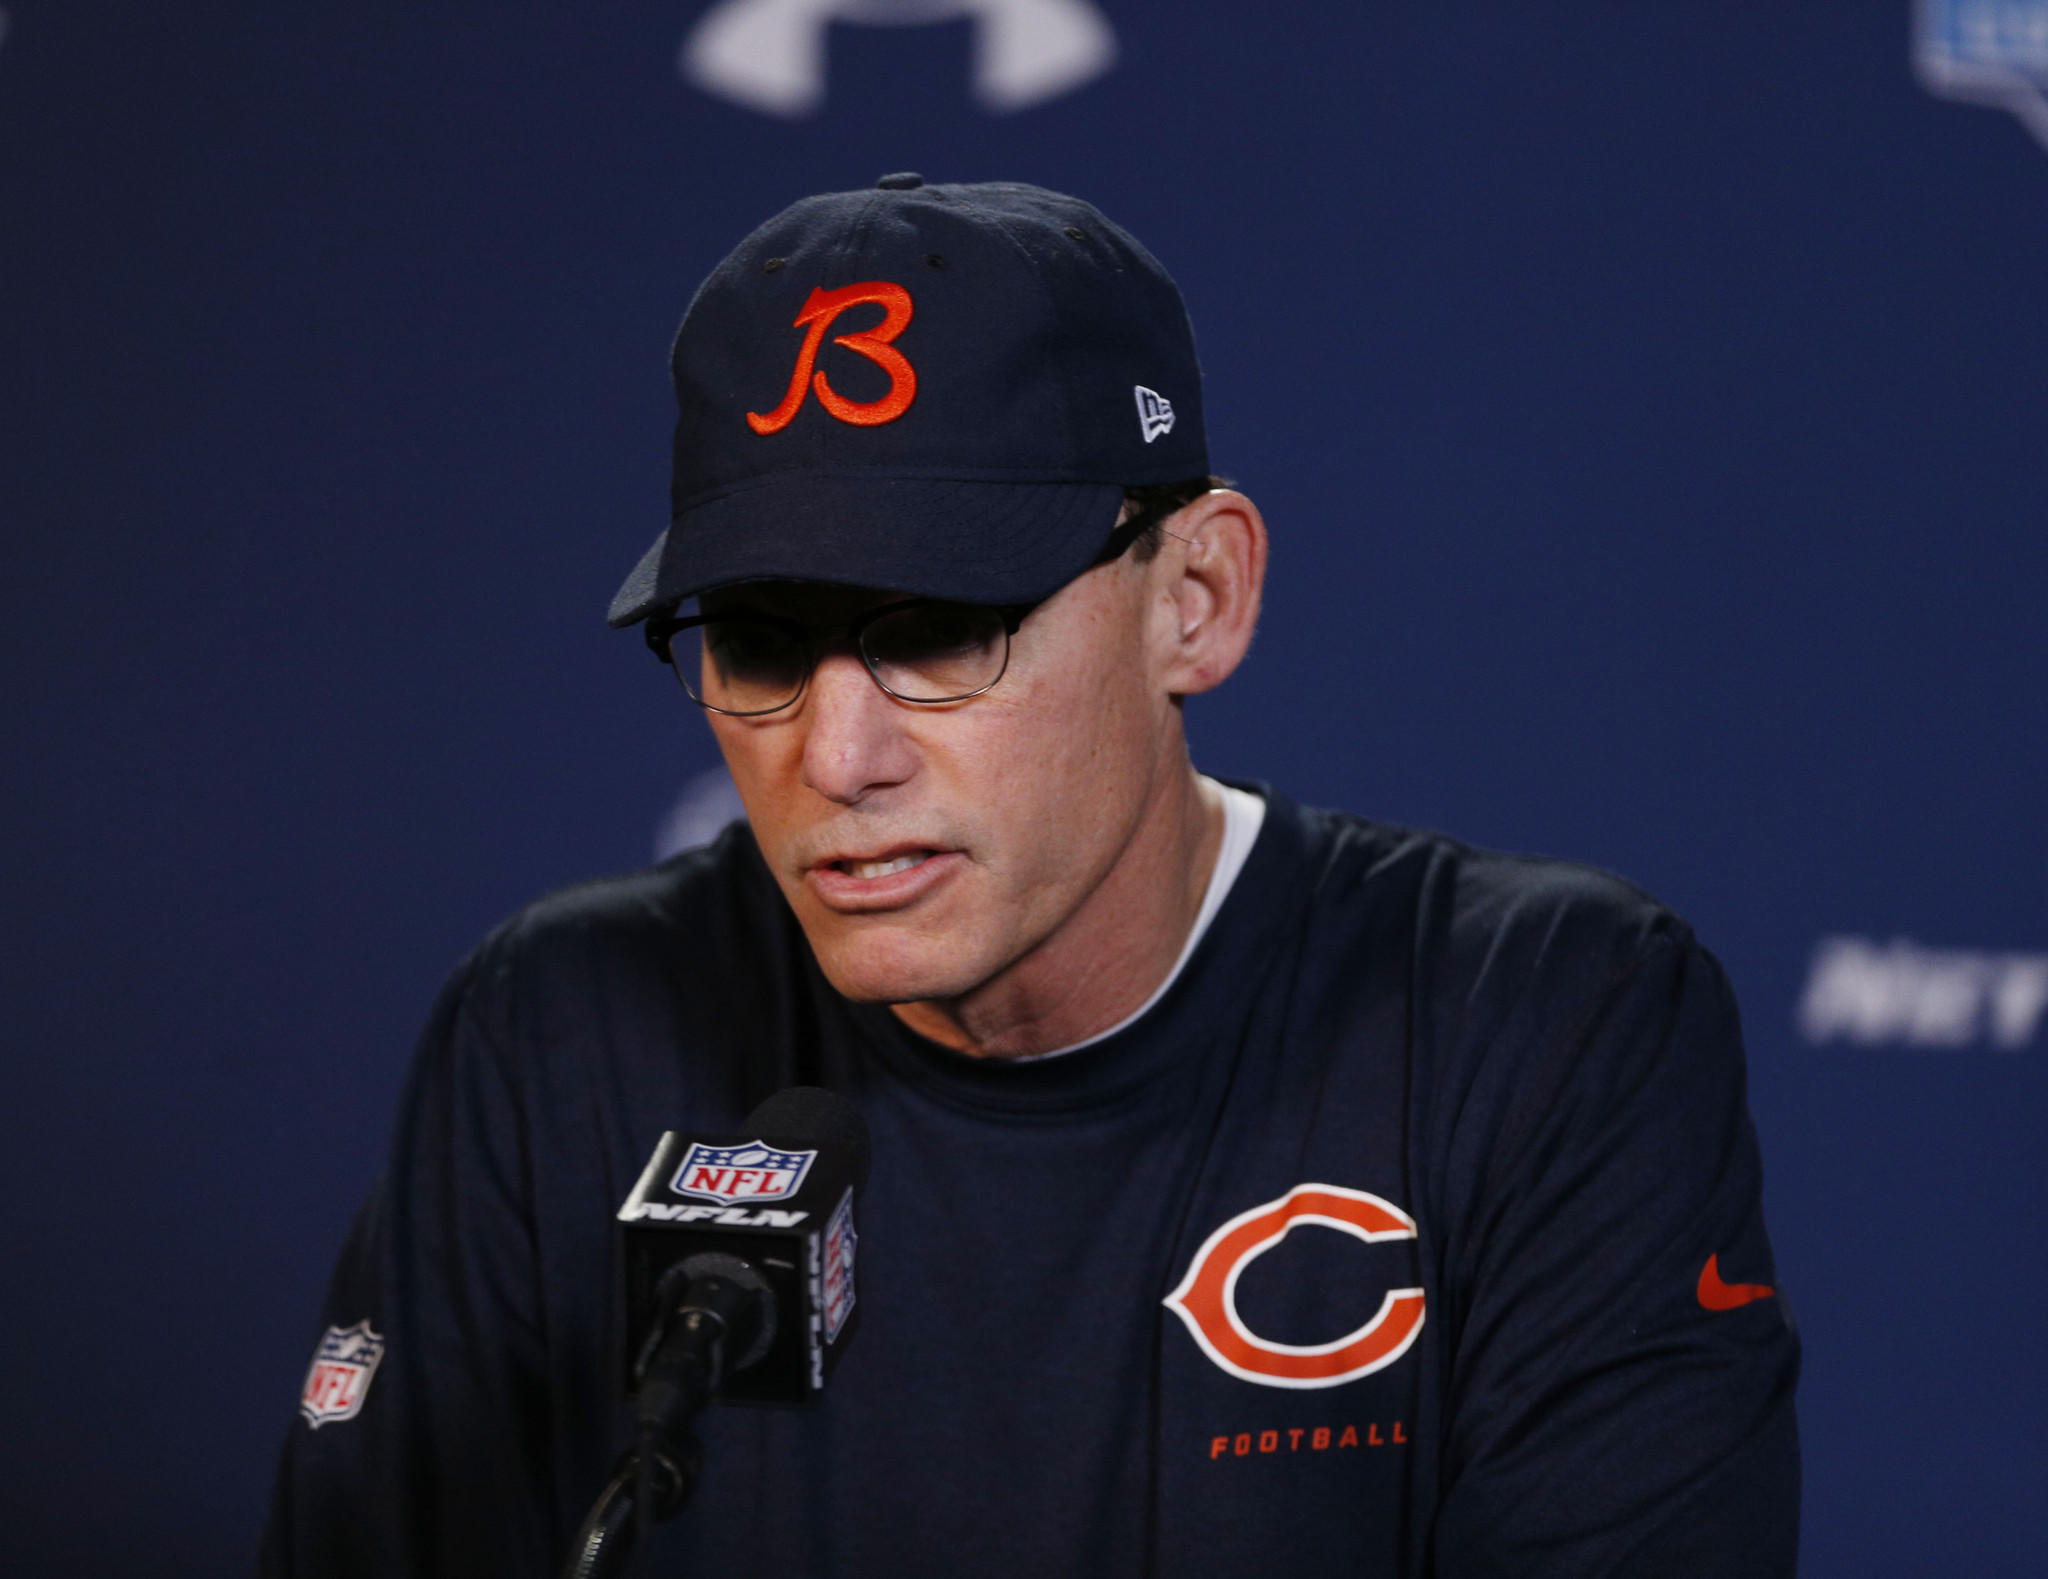 Bears coach Marc Trestman speaks during a press conference during the 2014 NFL Combine at Lucas Oil Stadium.